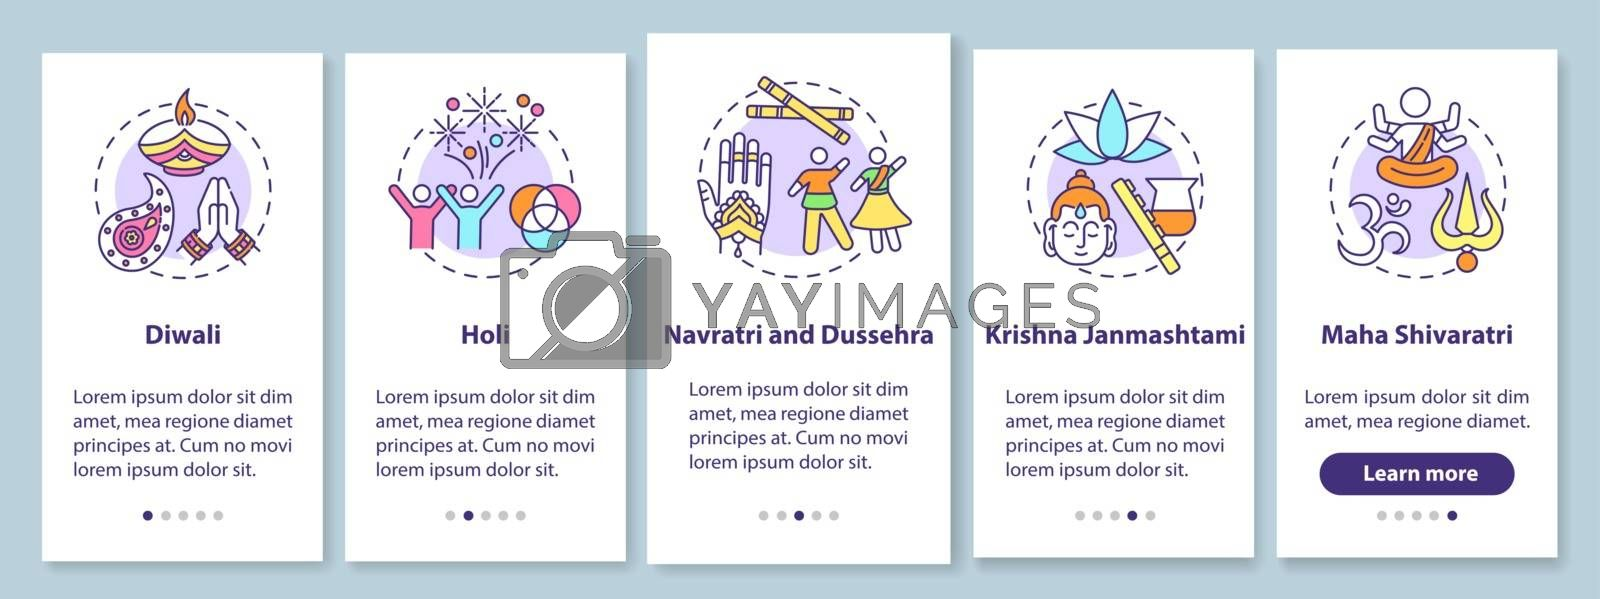 Top Hindu festivals onboarding mobile app page screen with concepts. Krishna Janmashtami. Navratri. Dussehra. Walkthrough 5 steps graphic instructions. UI vector template with RGB color illustrations